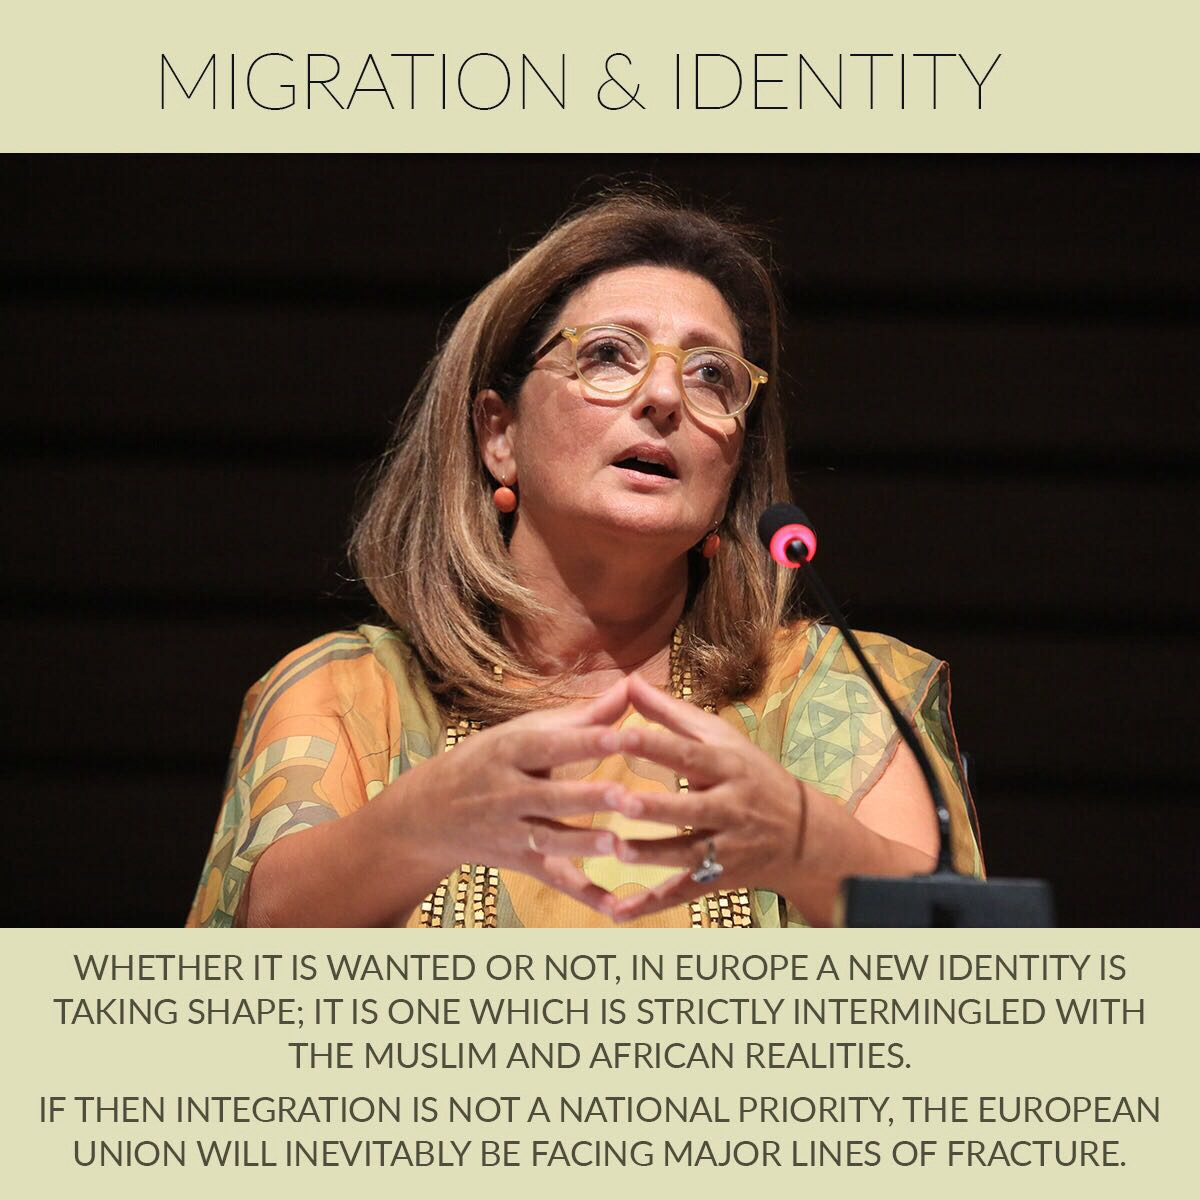 Yasmina Filali's Intervention at the Forum VI in Beyrouth – Migration and Identity in the Mediterranean